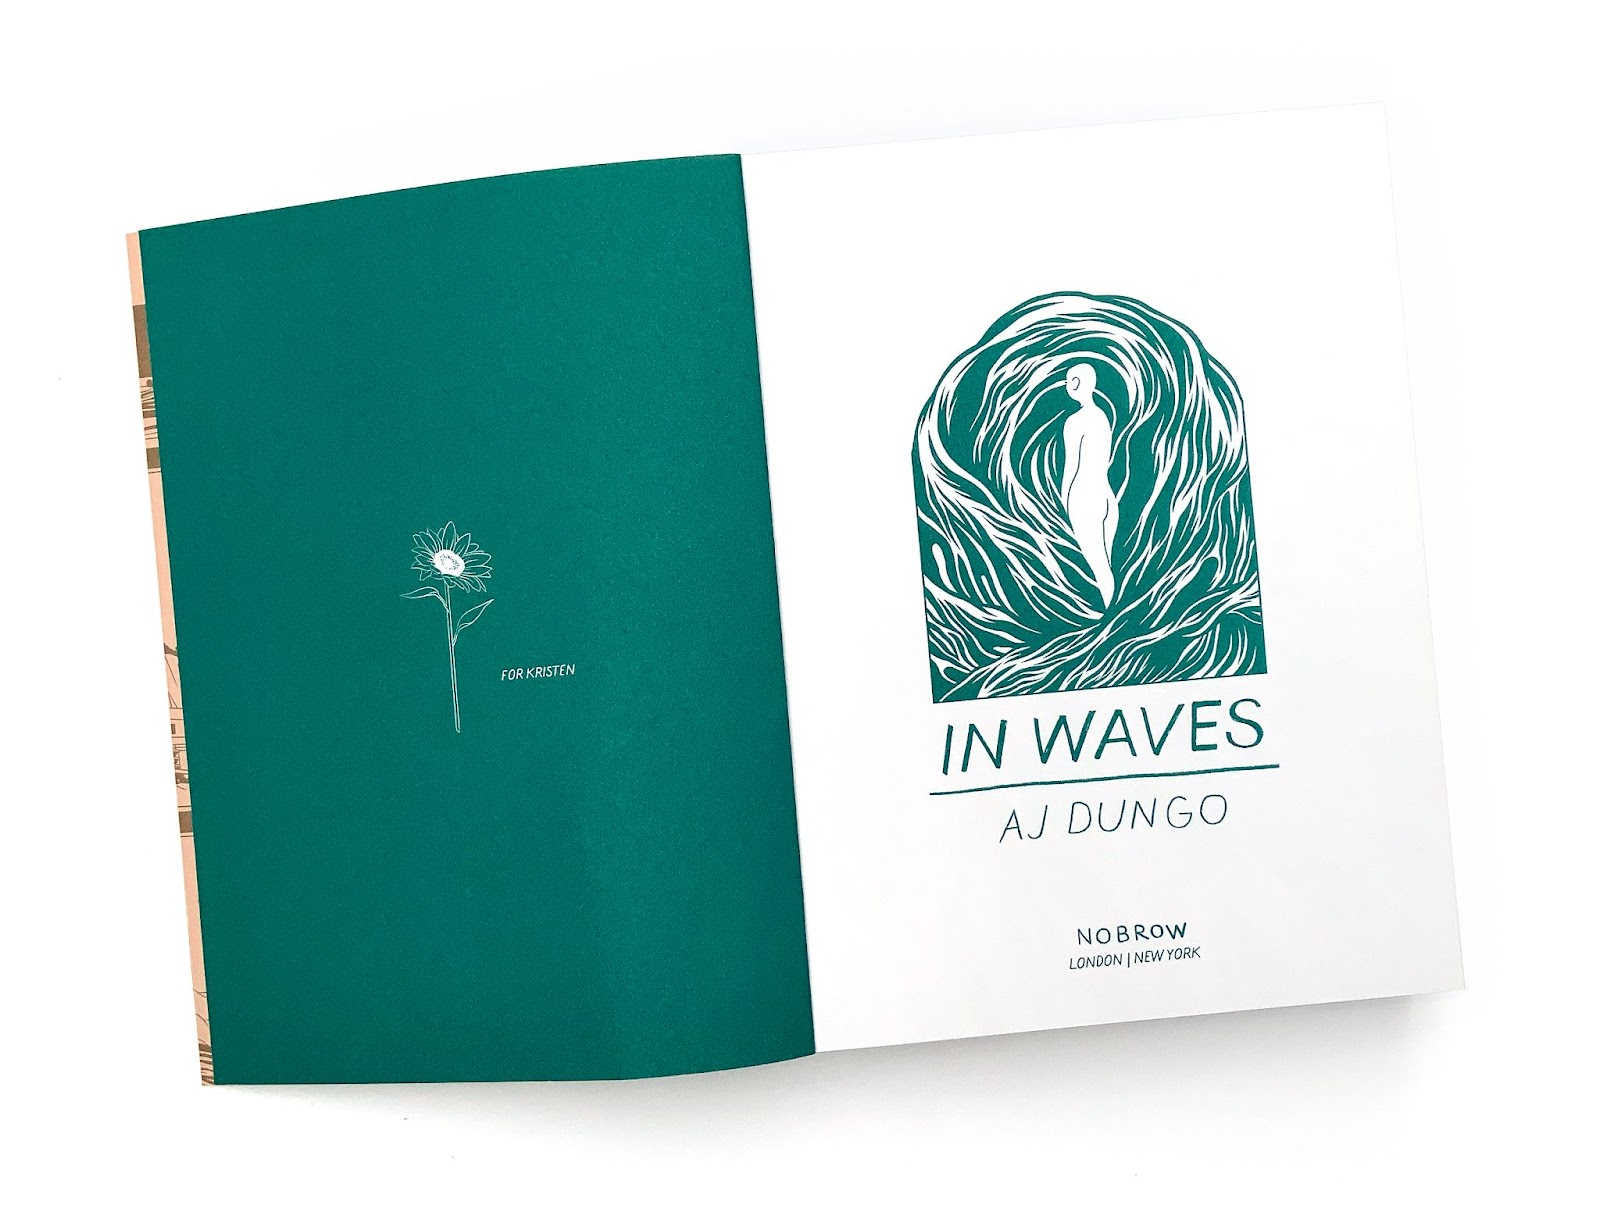 Comic-Con@Home Book Club In Waves by AJ Dungo